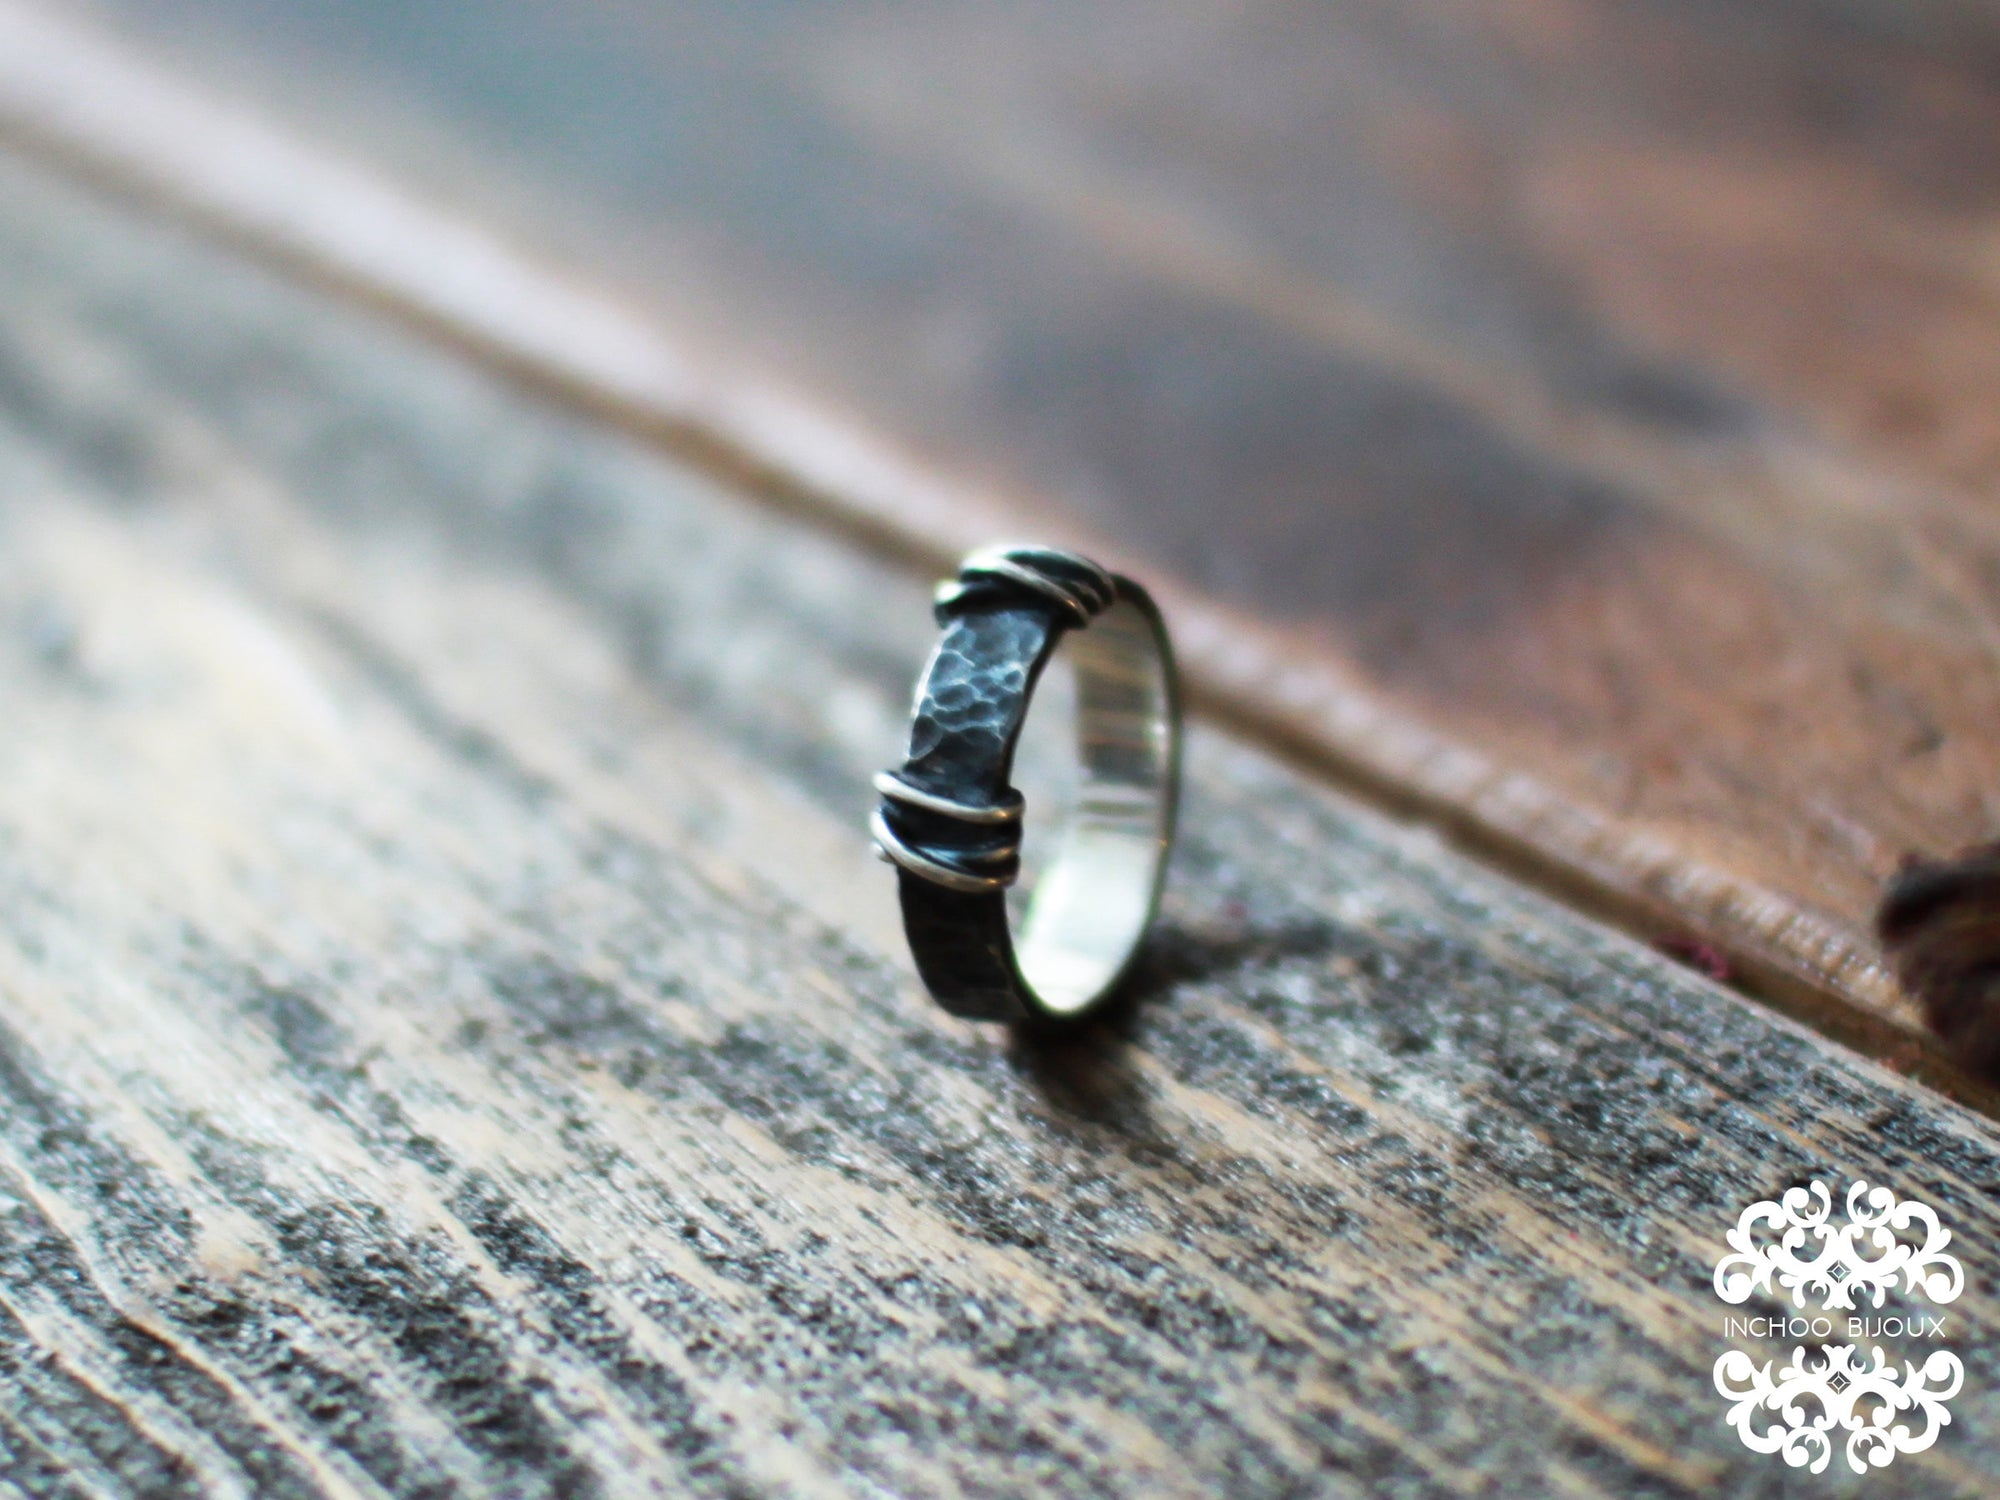 5mm Hammered Silver Mens Wedding Band Ring - Inchoo Bijoux